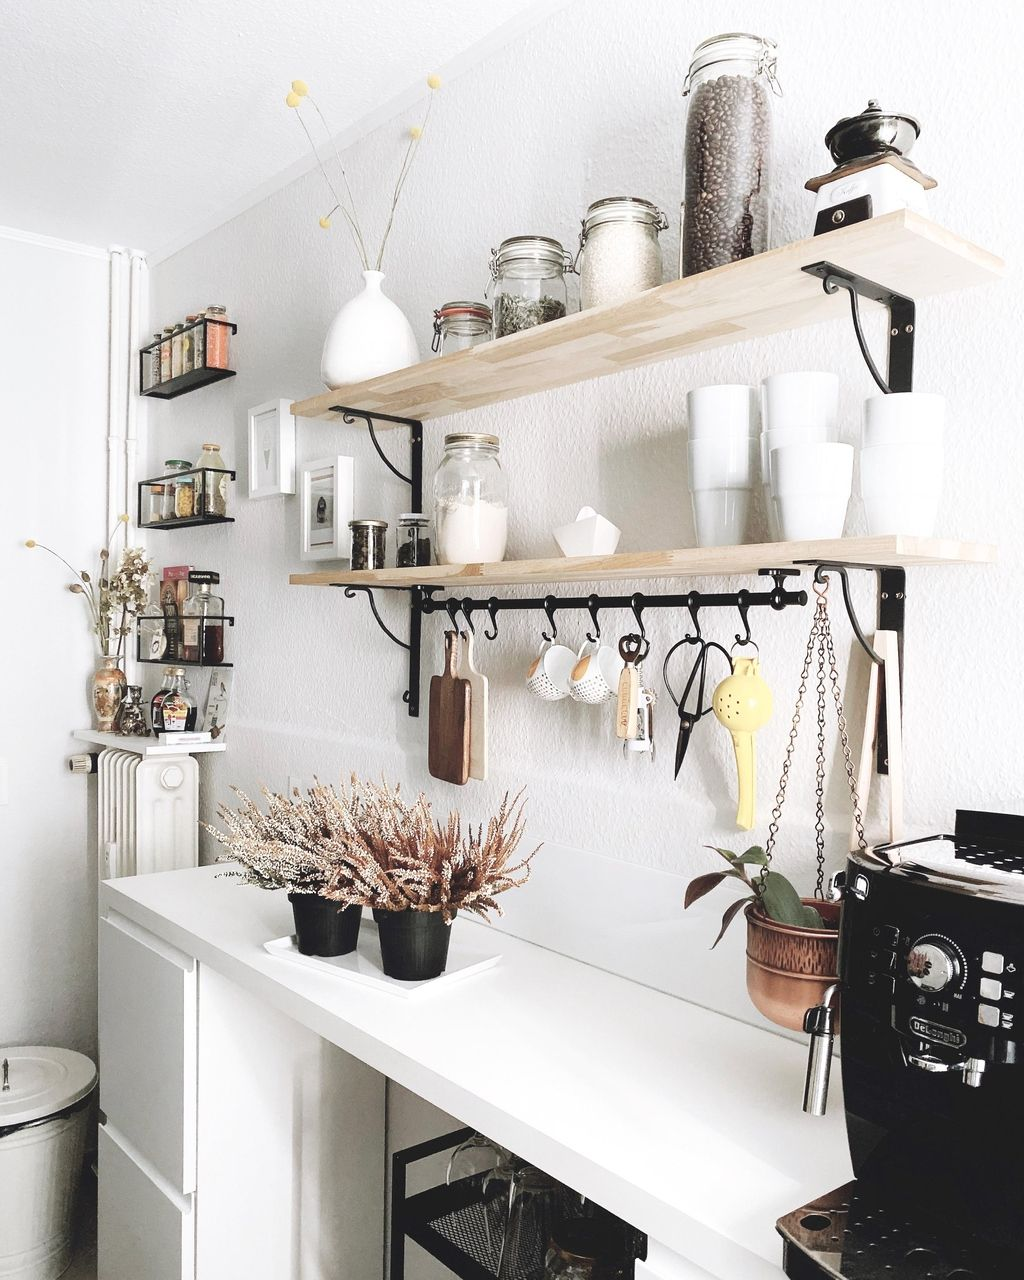 #kitchen #minimalistic #scandystyle #nordichome #mon...